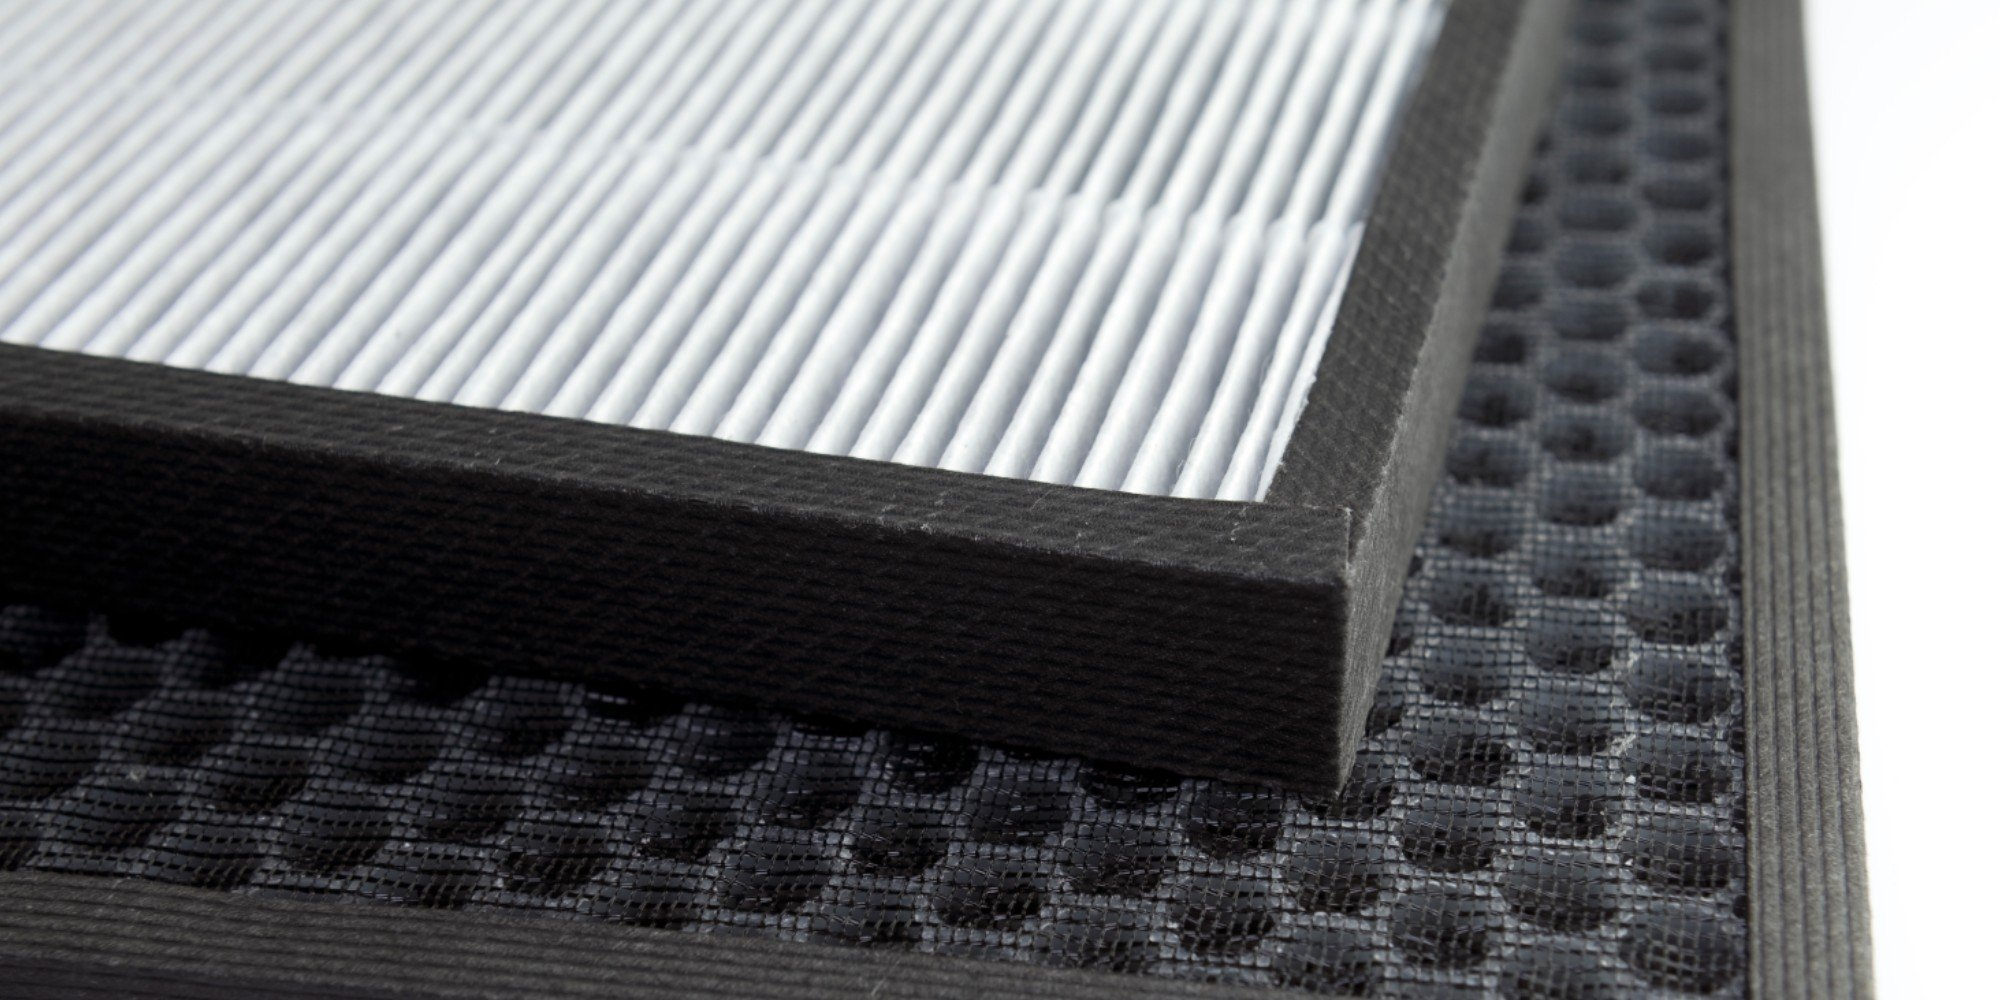 Air Filters For Furnace